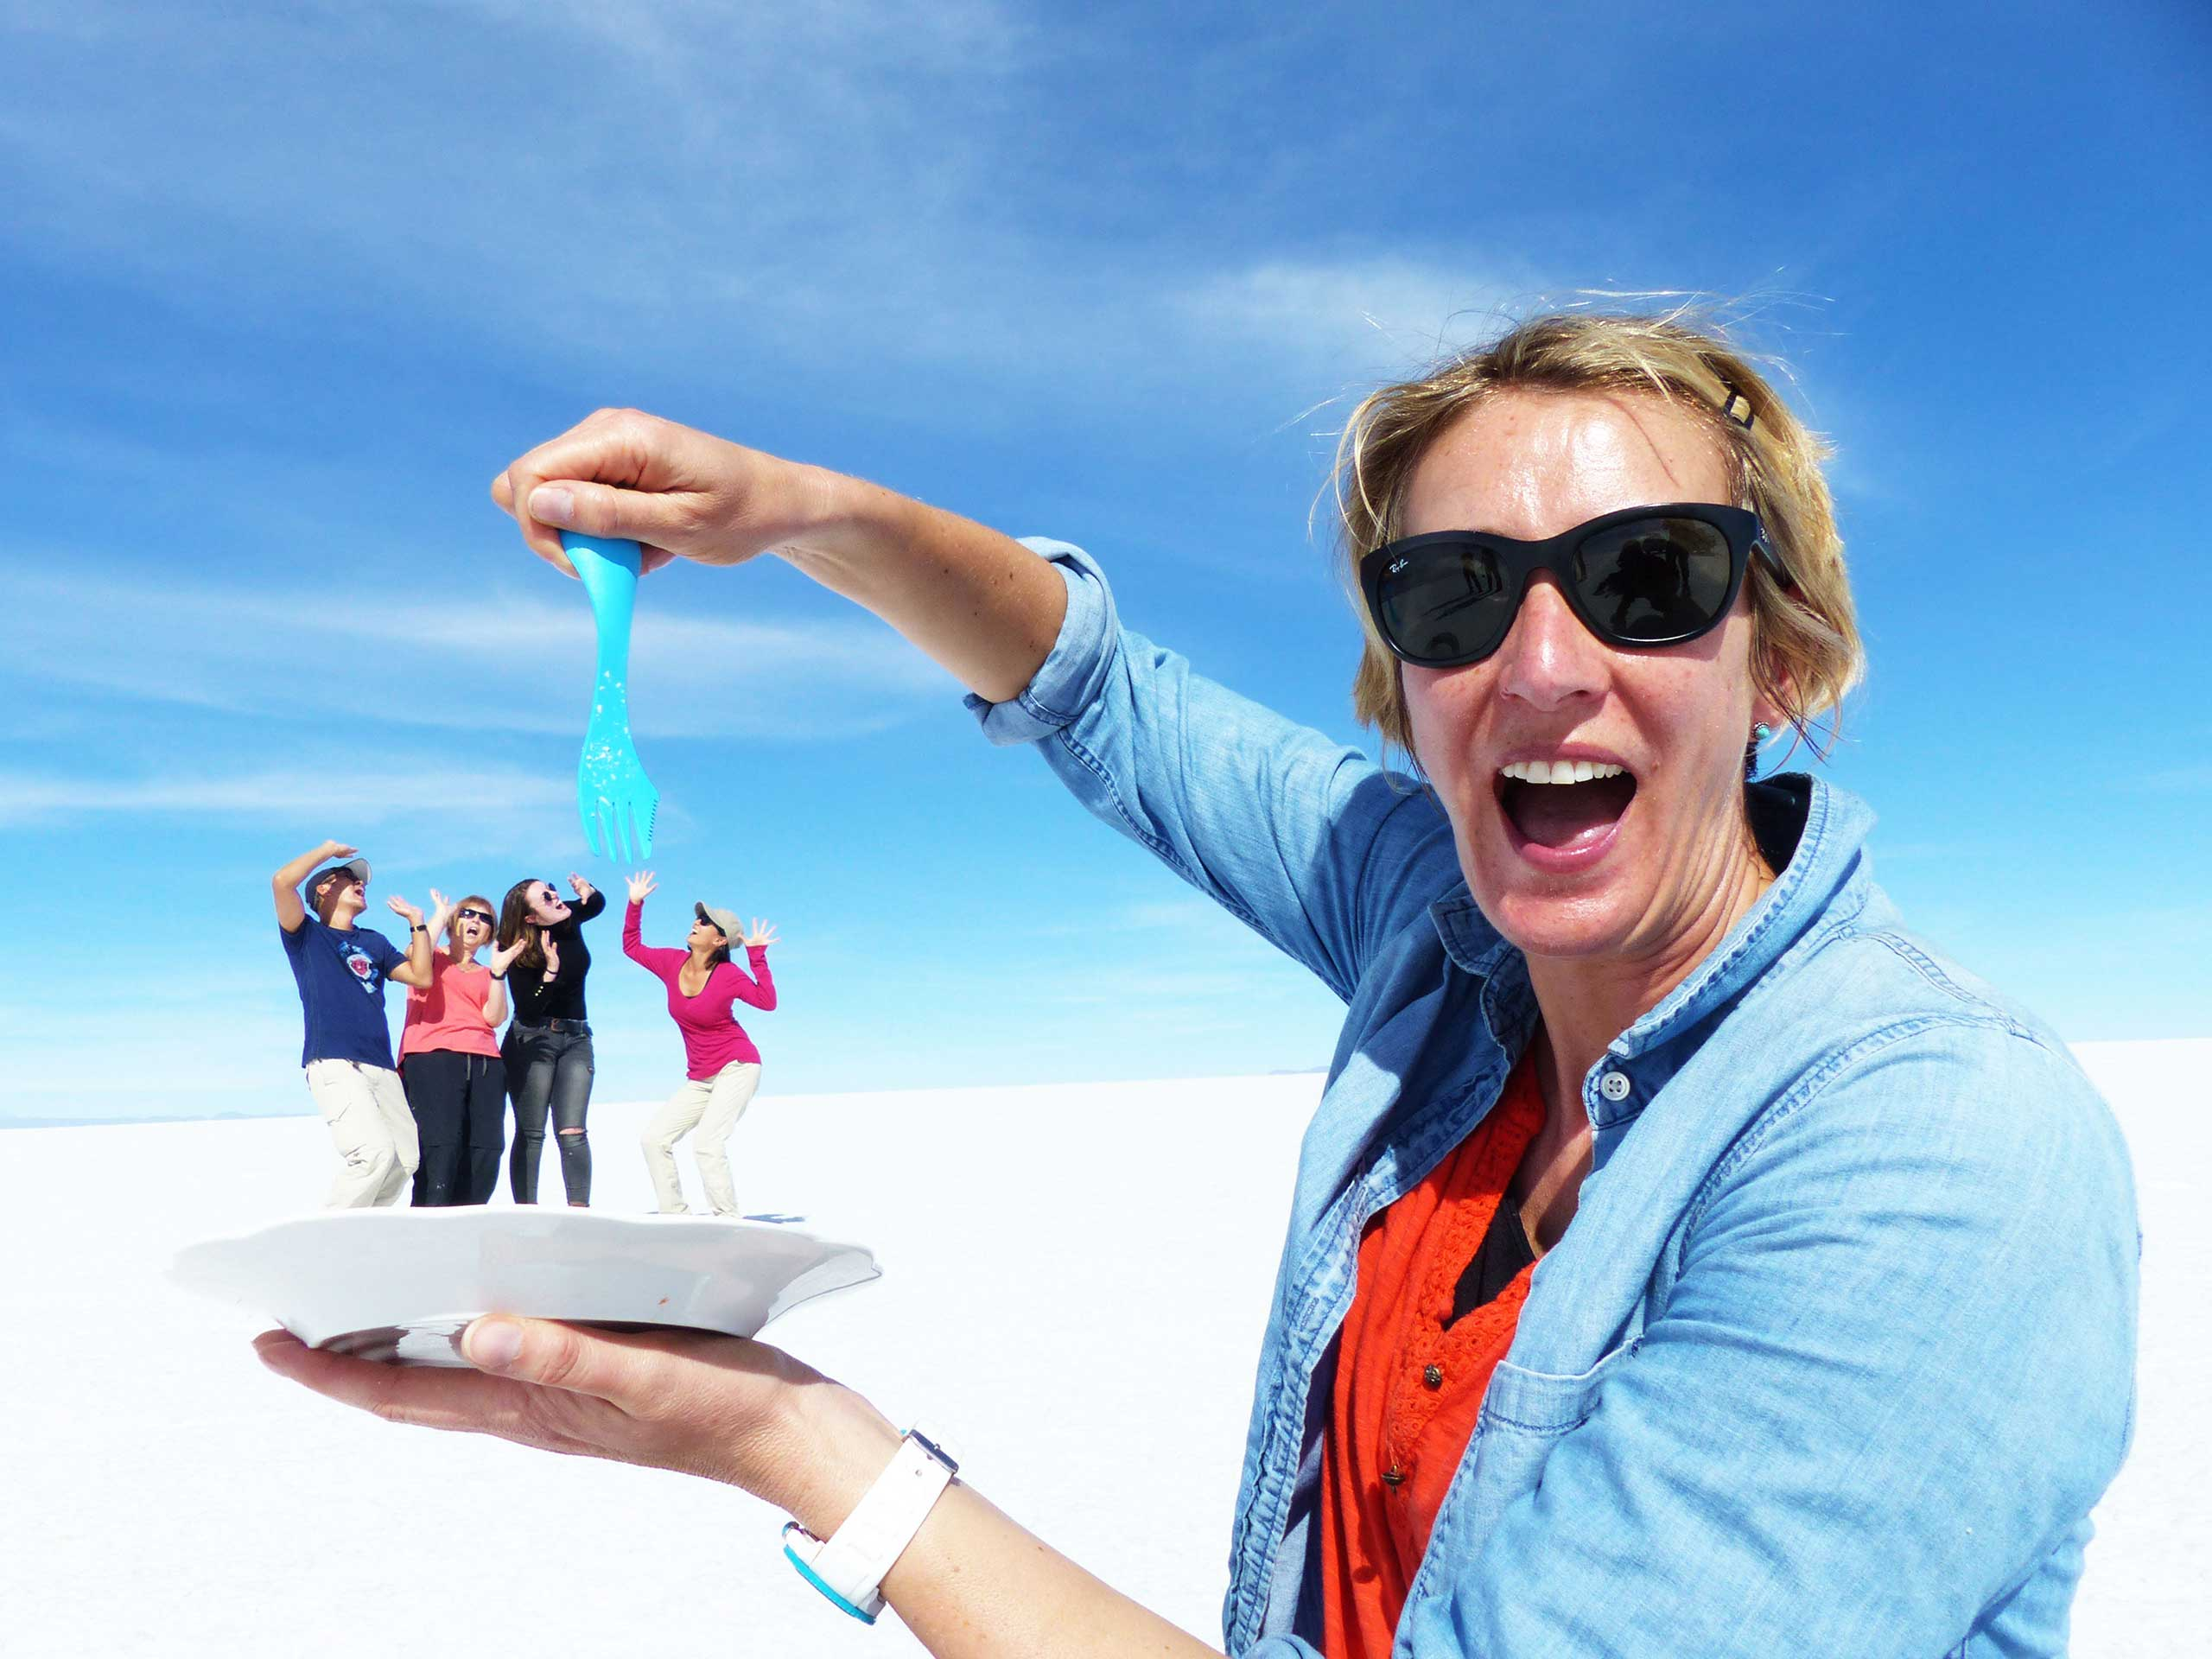 Suewherewhywhat is laughing as she pretends to eat 4 friends with a blue fork from a plate, using the flat perspective Salar de Uyuni (Salt Flats) & beyond